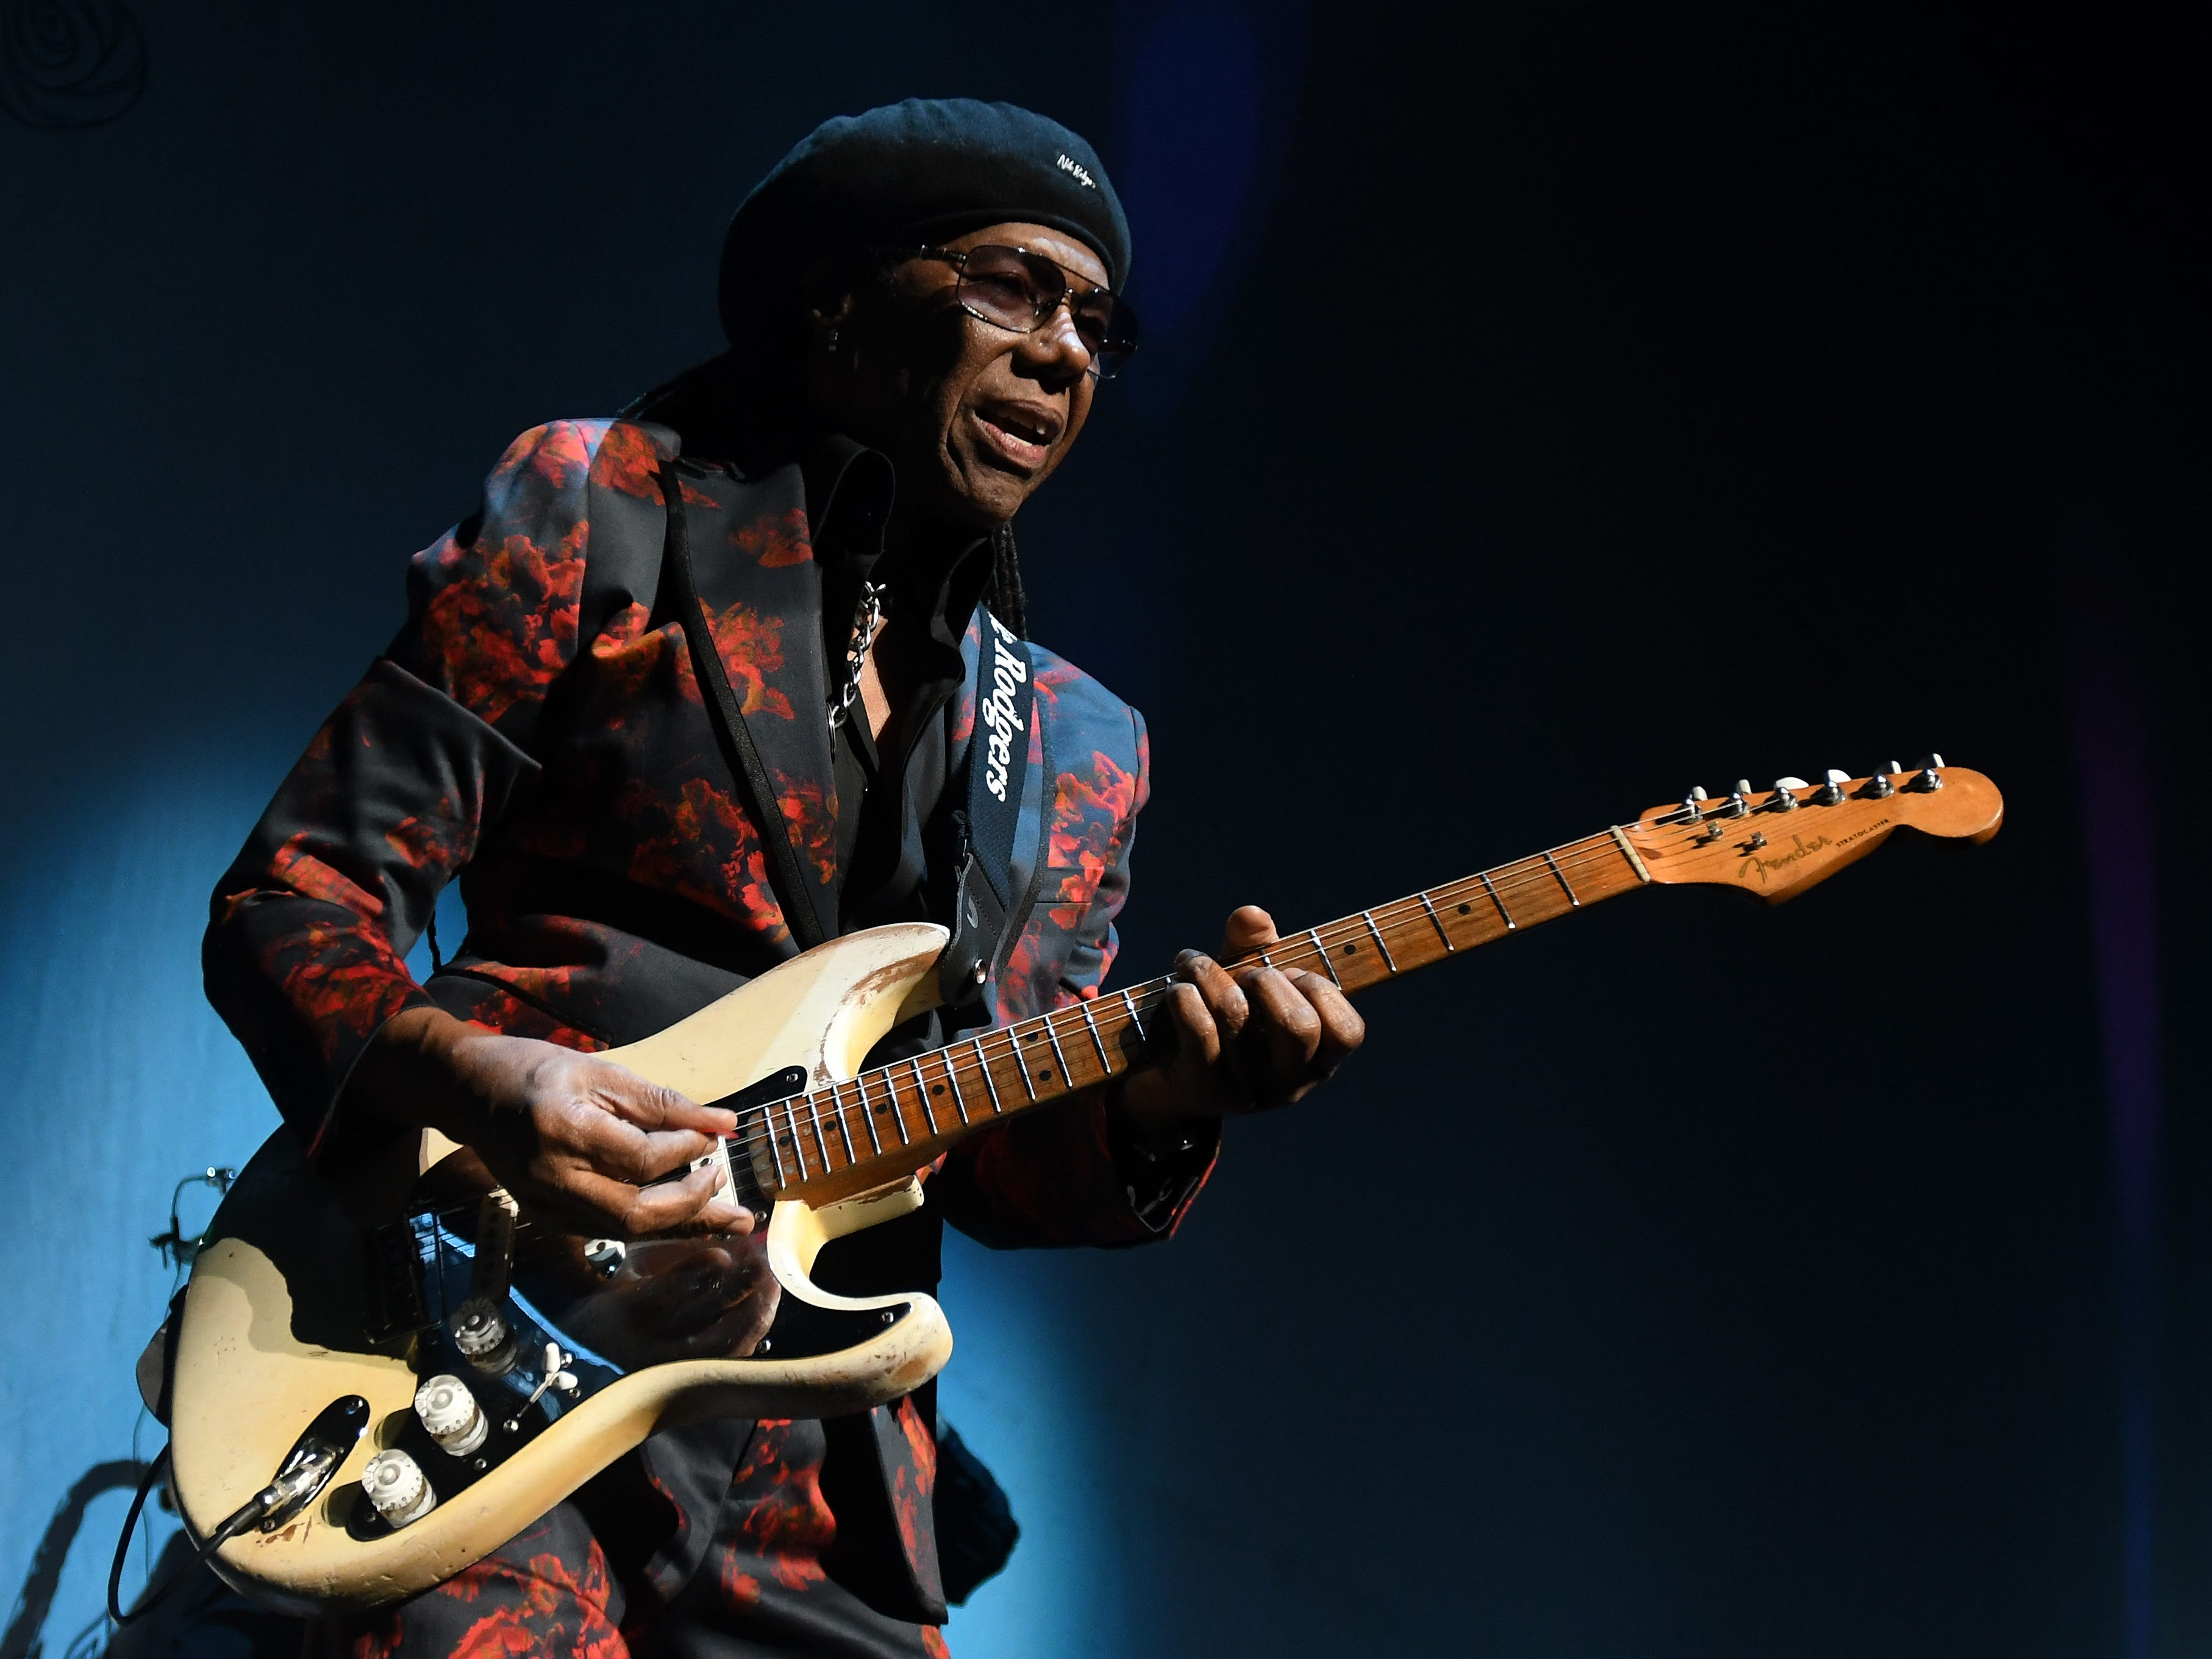 Lead guitar and vocals Nile Rodgers of Chic gets the crowd dancing before Cher takes the stage at Little Caesars Arena in Detroit.